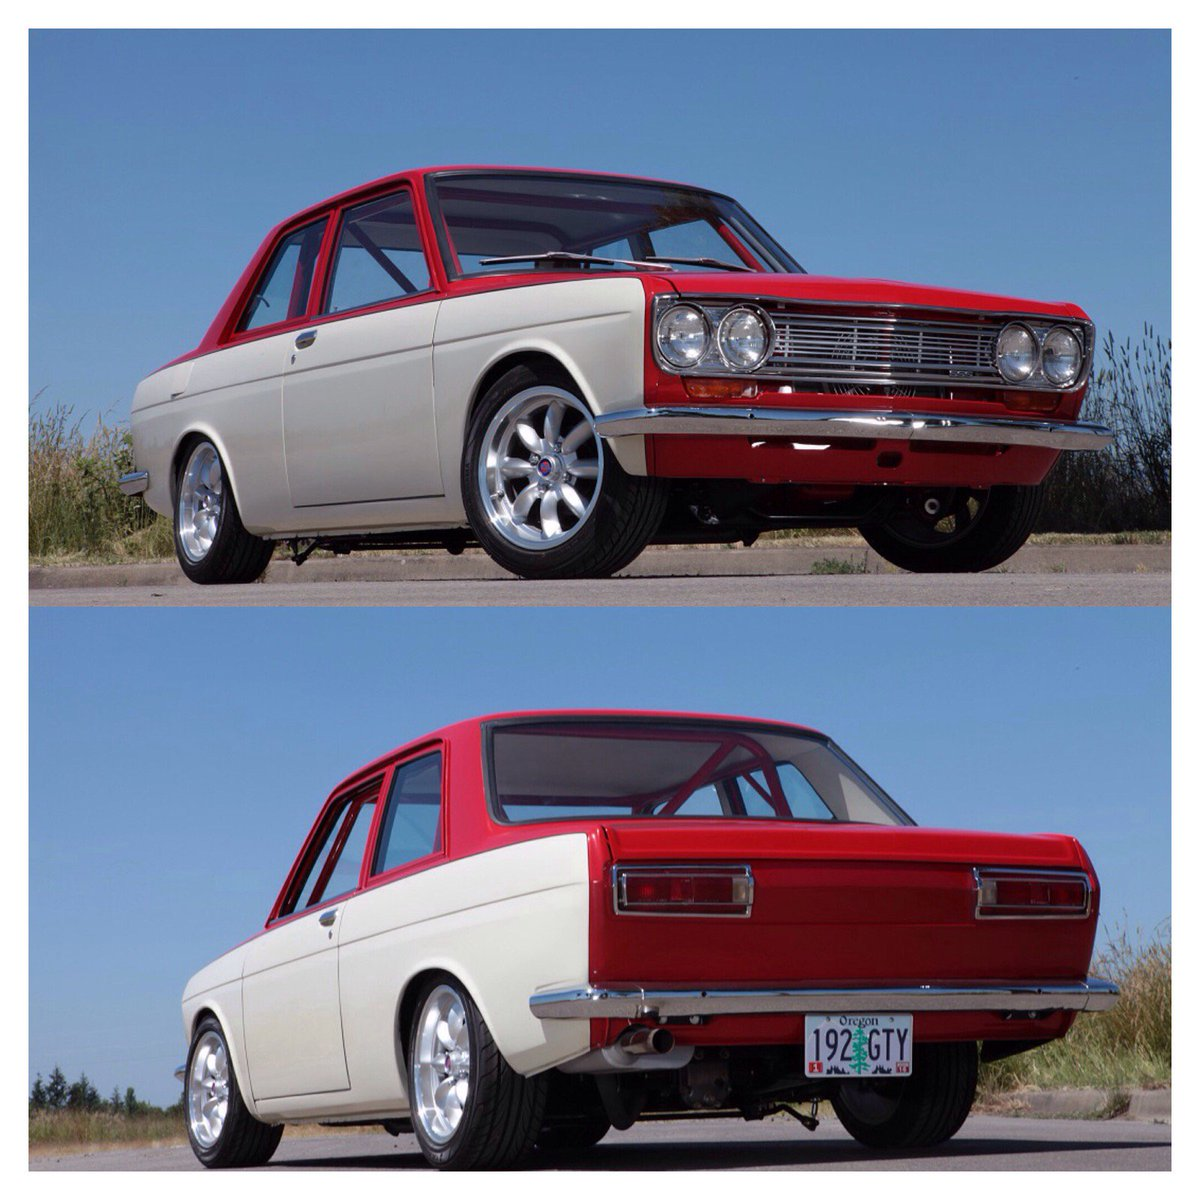 Metalworks  has beatifully blended East and West with their Flowmaster-equipped Datsun 510. https://t.co/qk9mSf0D4F